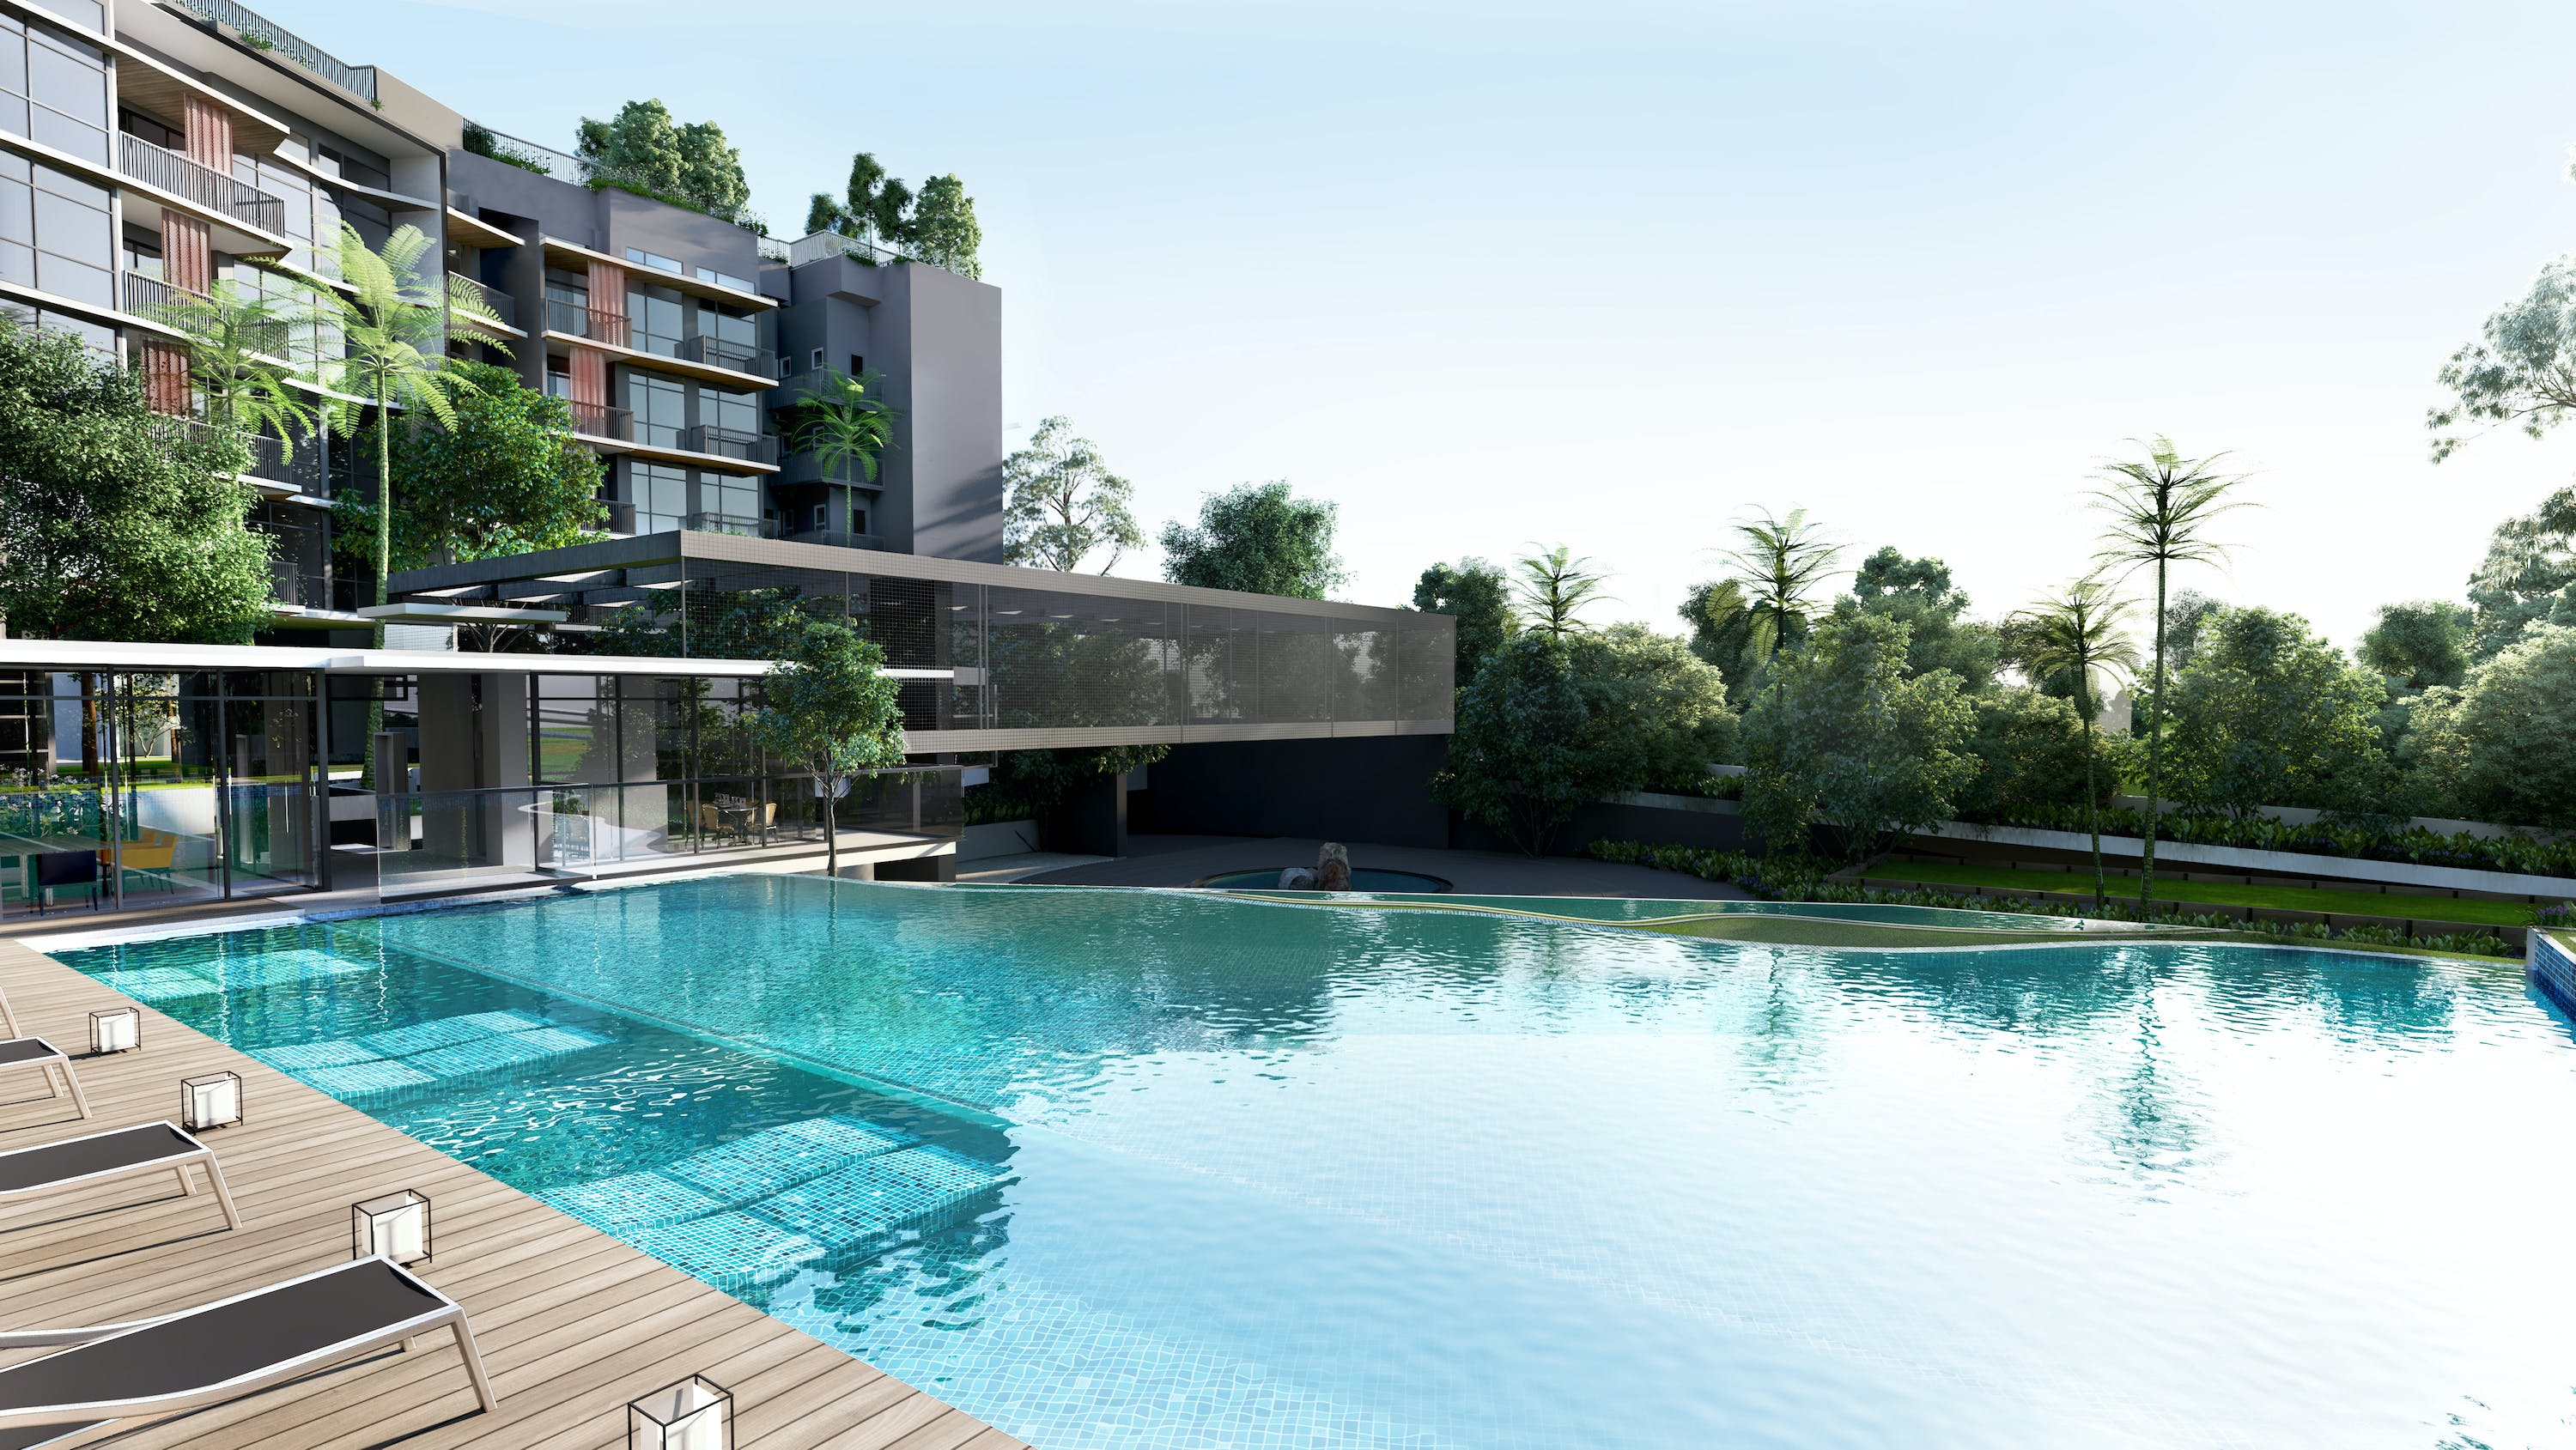 Sparkling 50m swimming pool